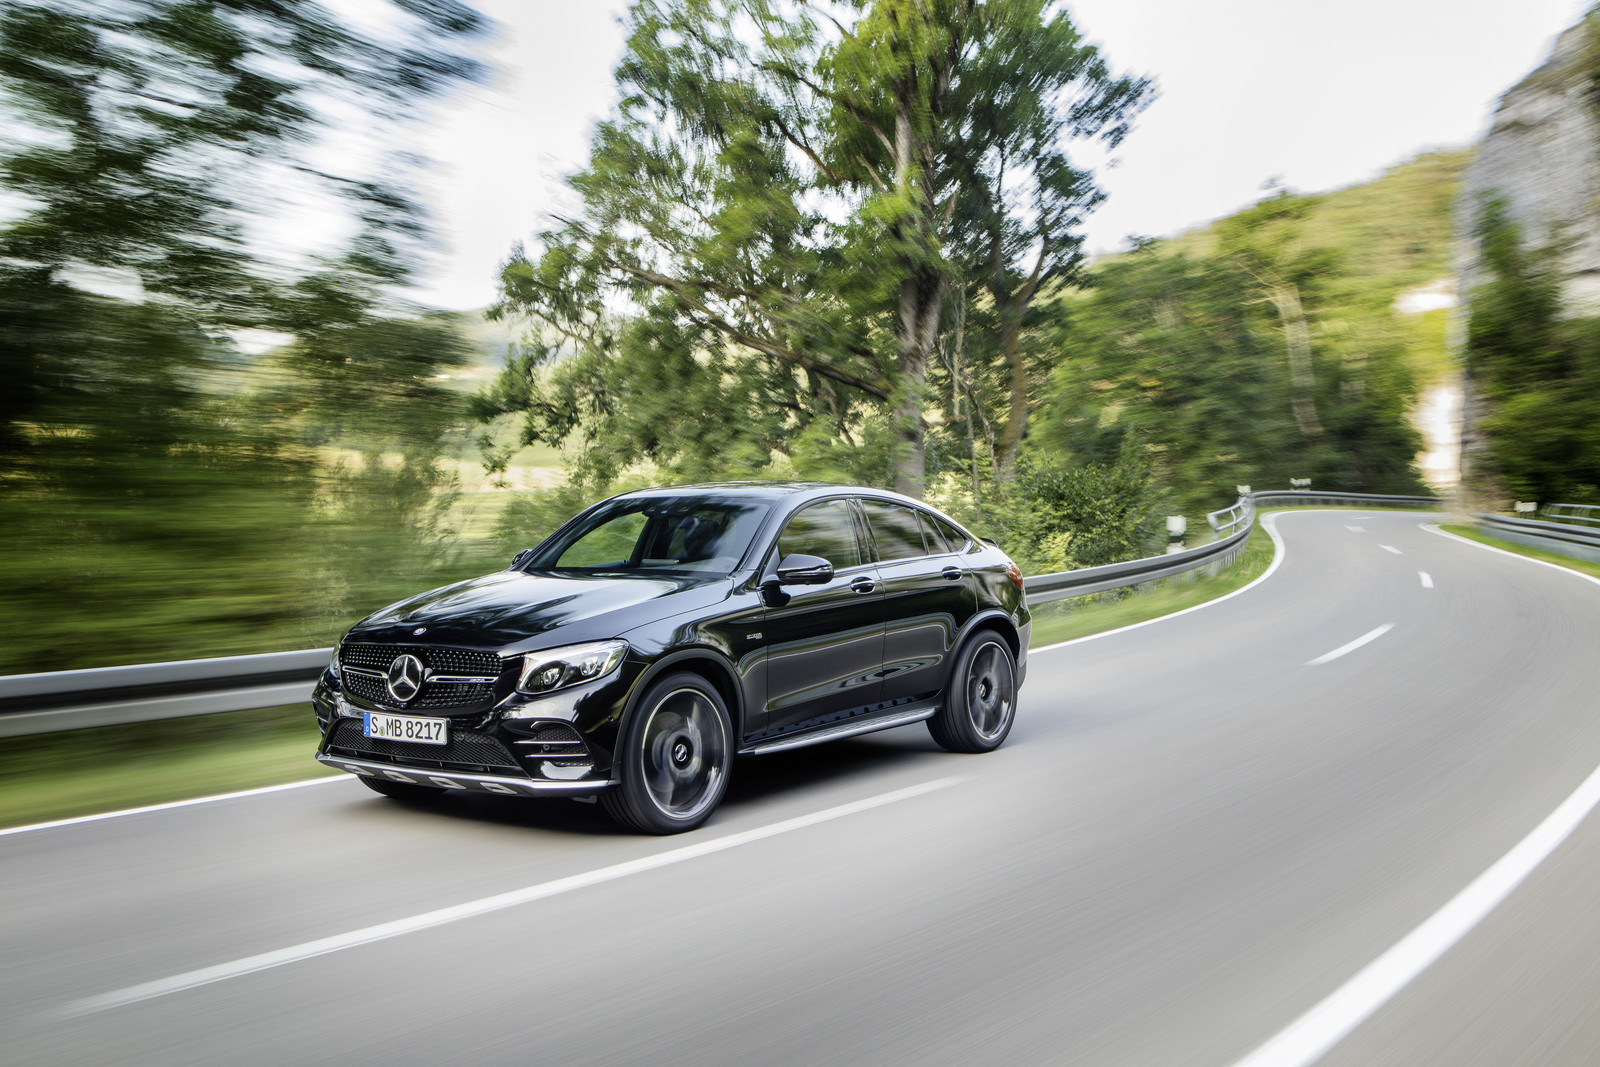 Foto de Mercedes-AMG GLC 43 4MATIC Coupé (3/24)